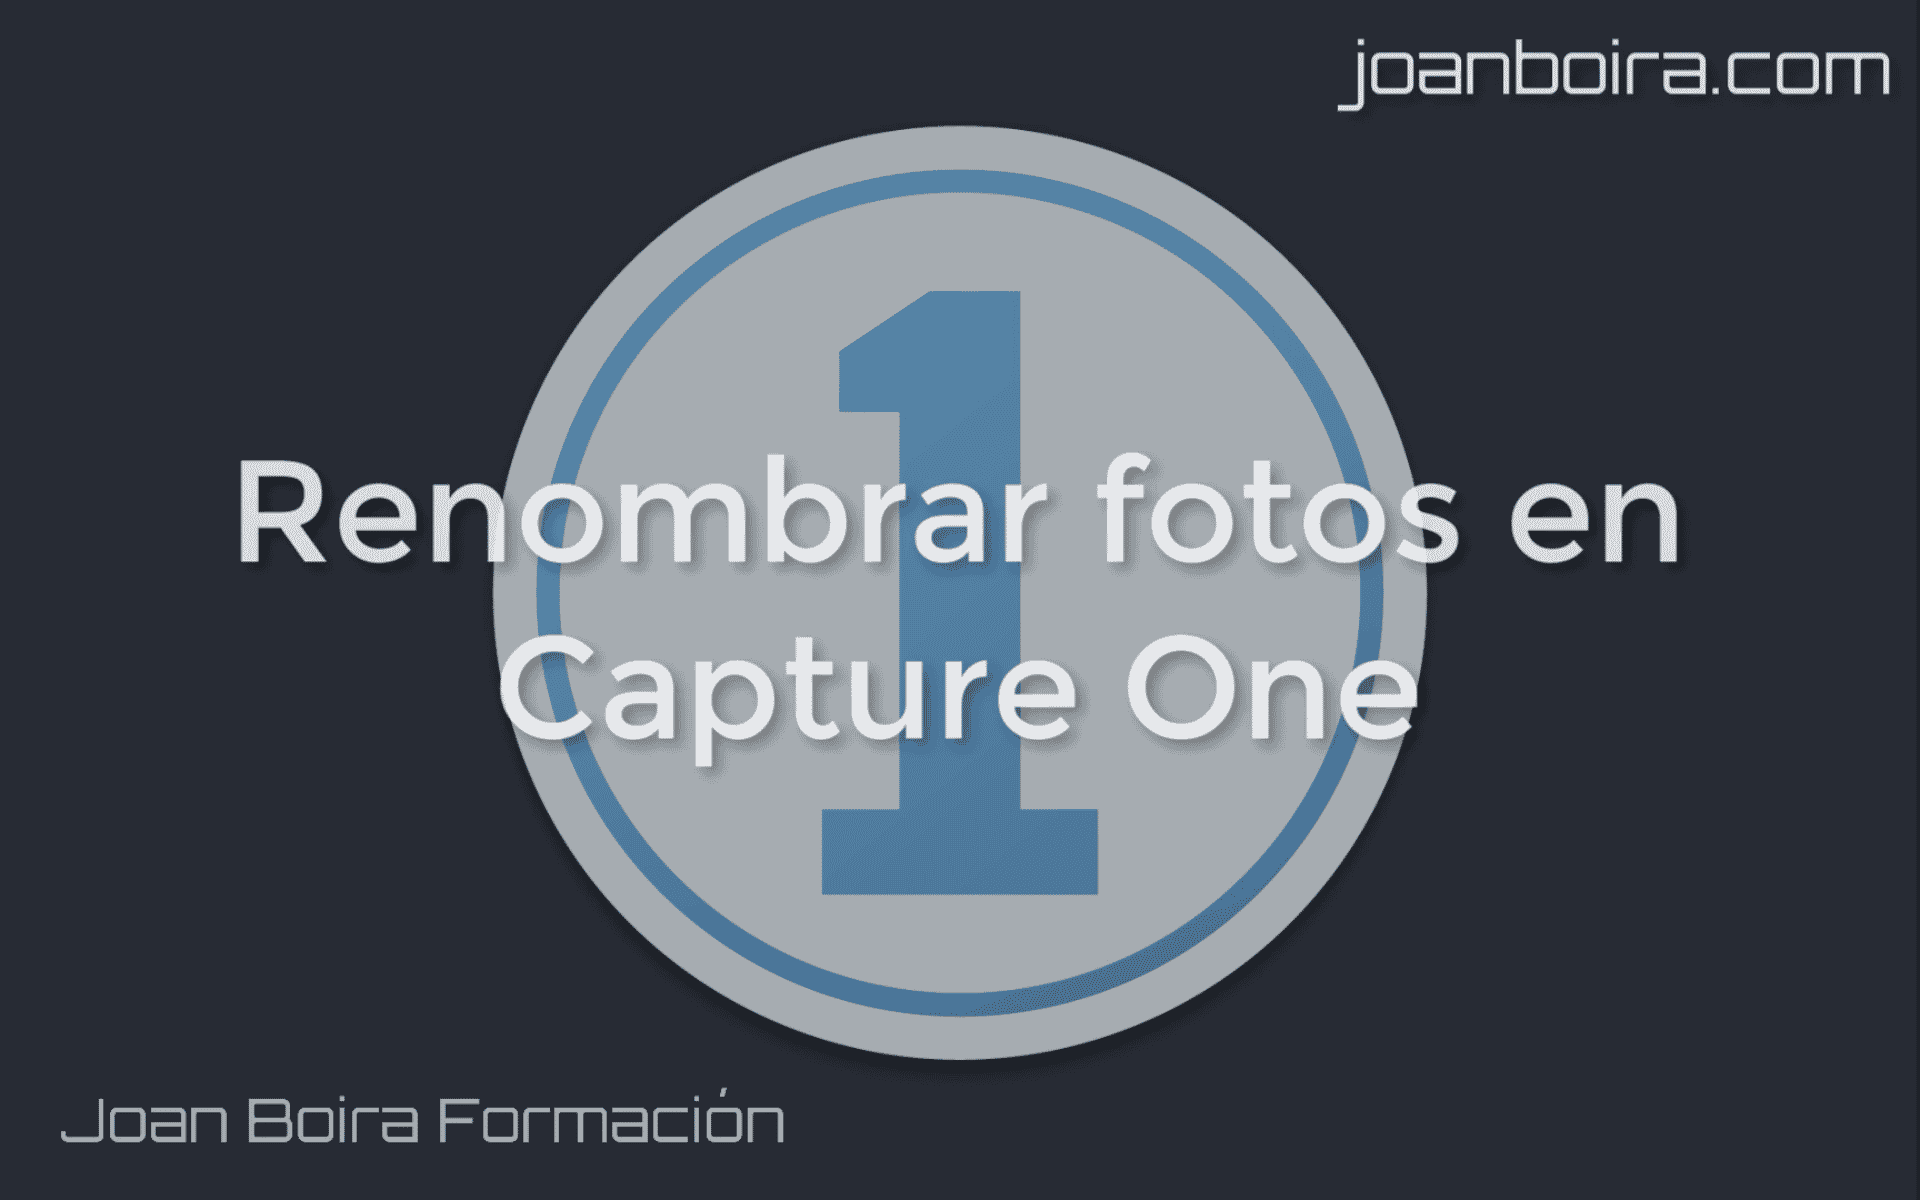 Renombrar fotografías en Capture One